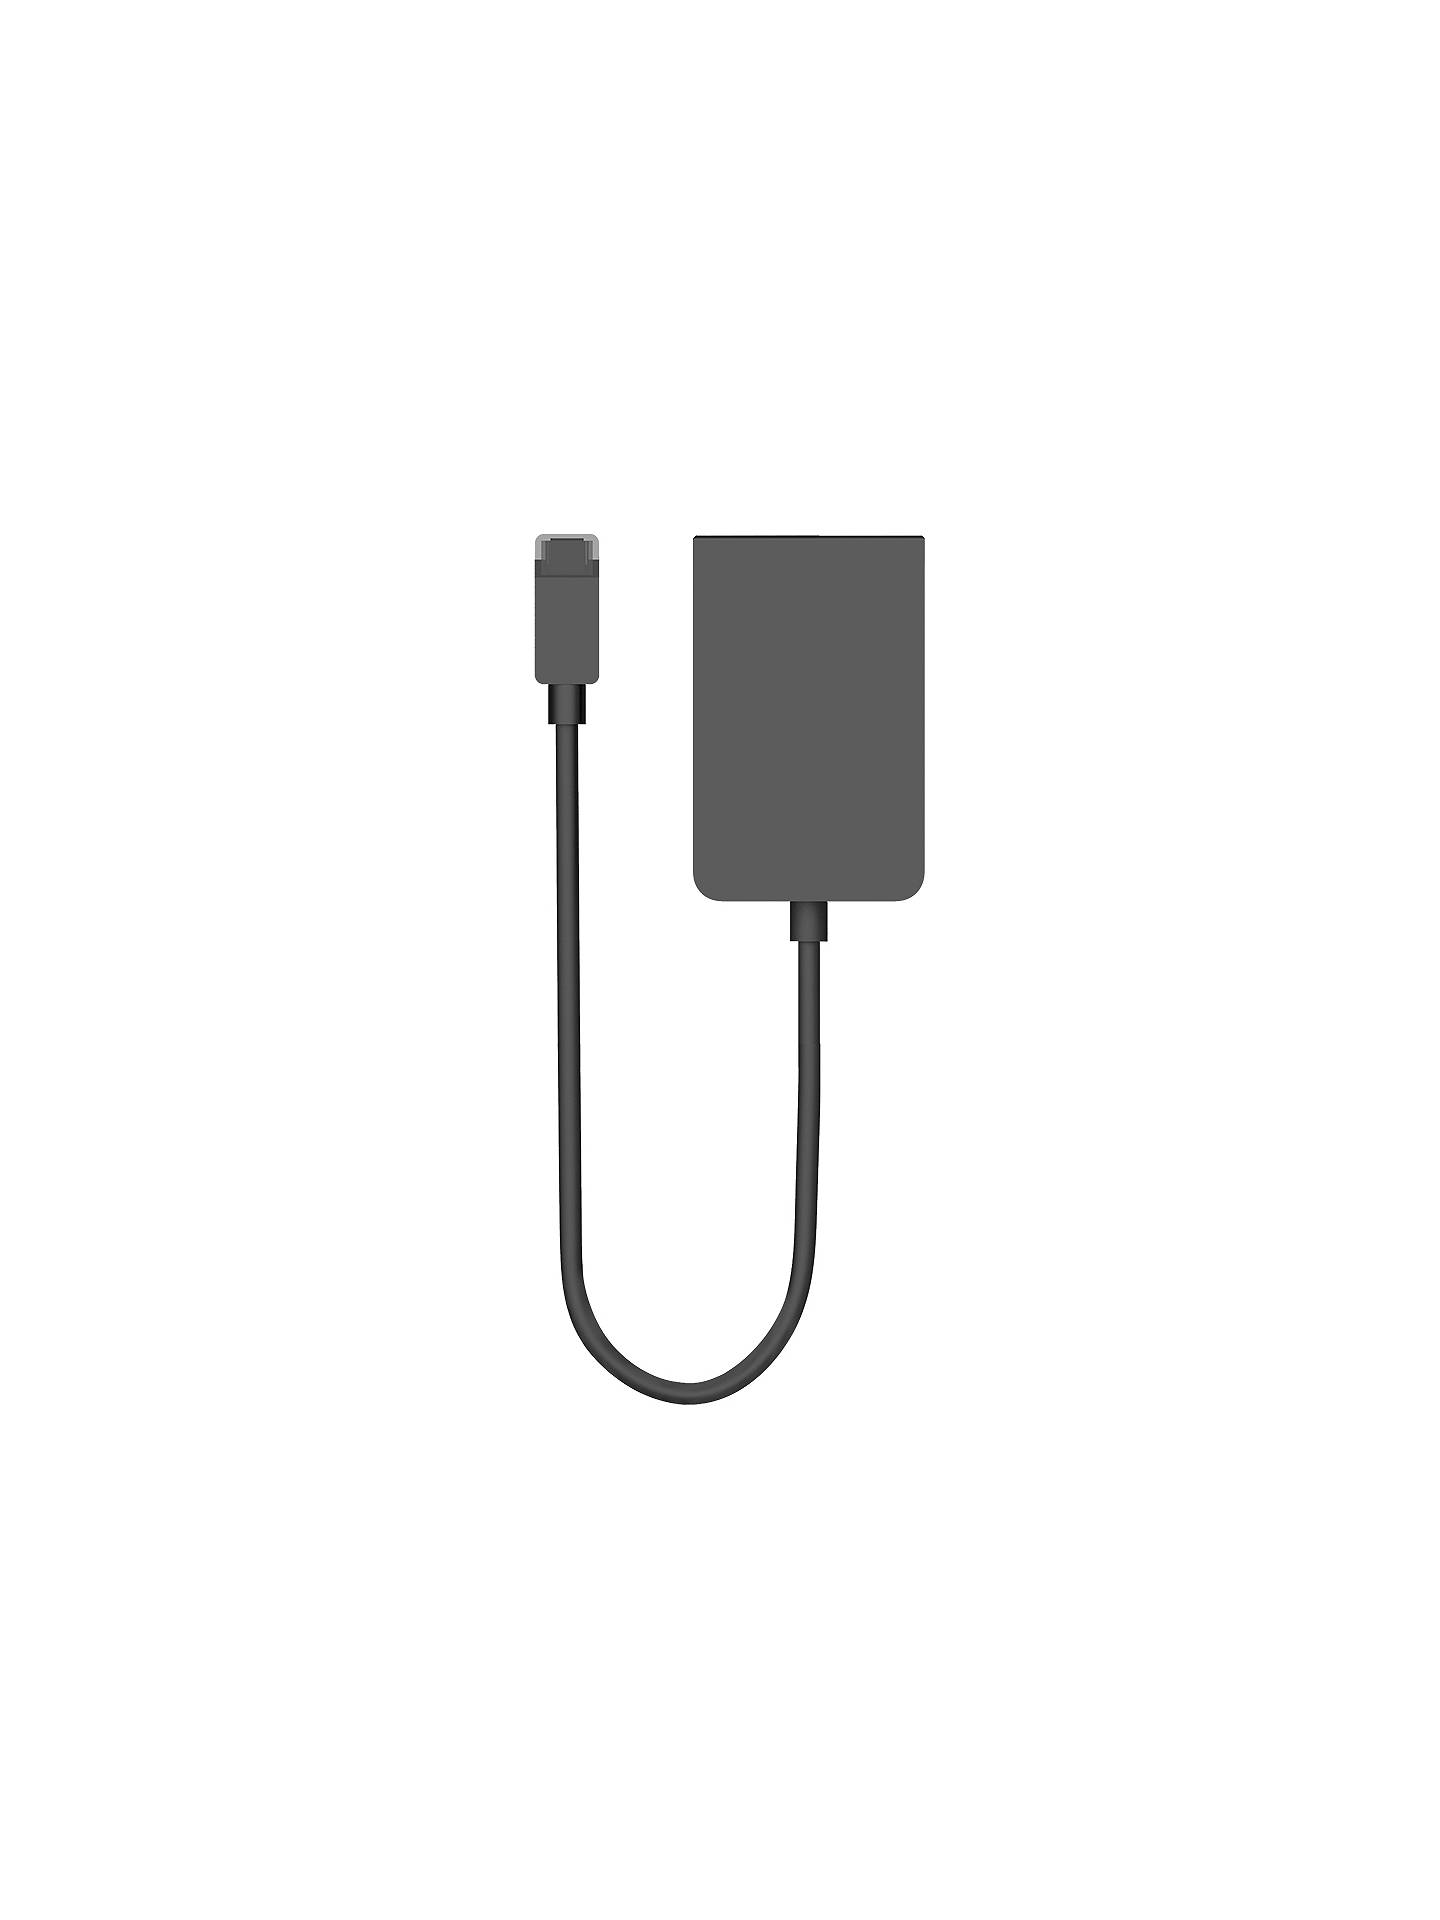 Microsoft VGA Adapter Cable for Surface and Surface 2 at